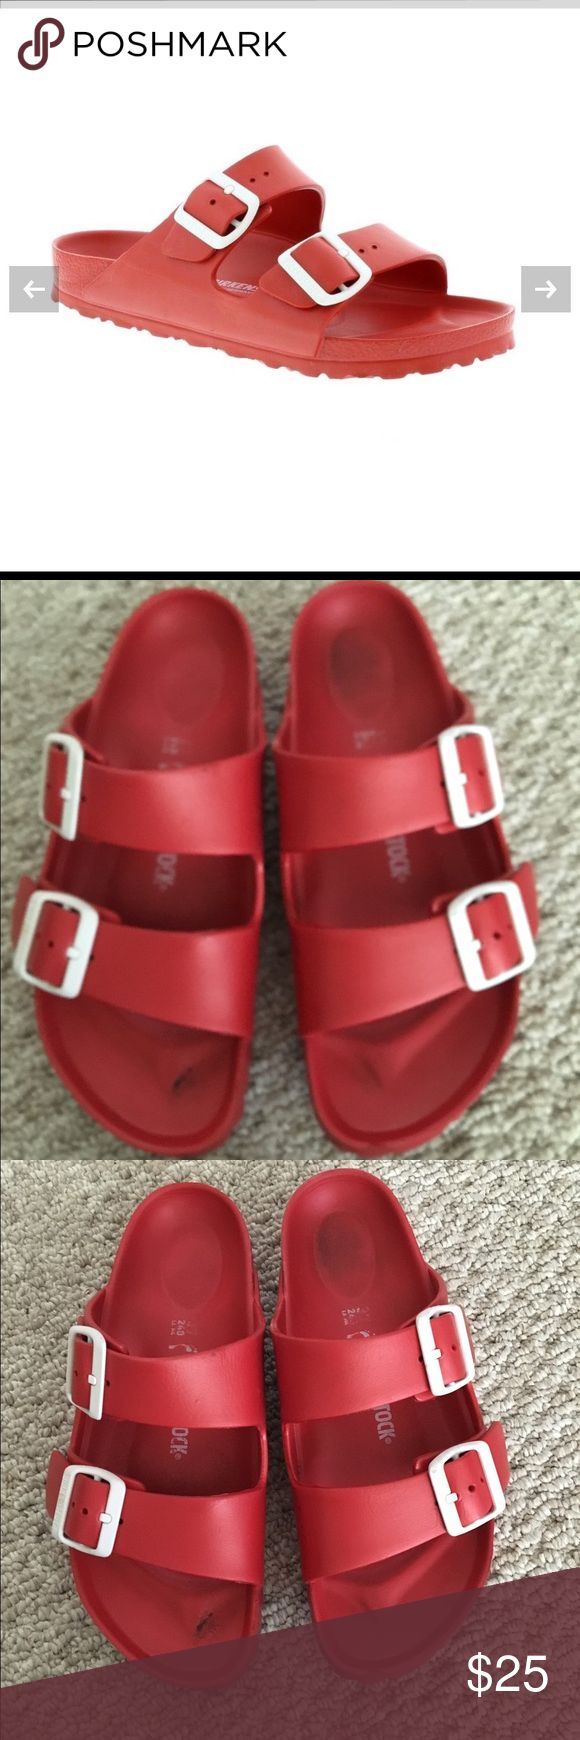 Red Soft Plastic Birkenstocks 37 Worn just a few times size 37 no trades Shoes